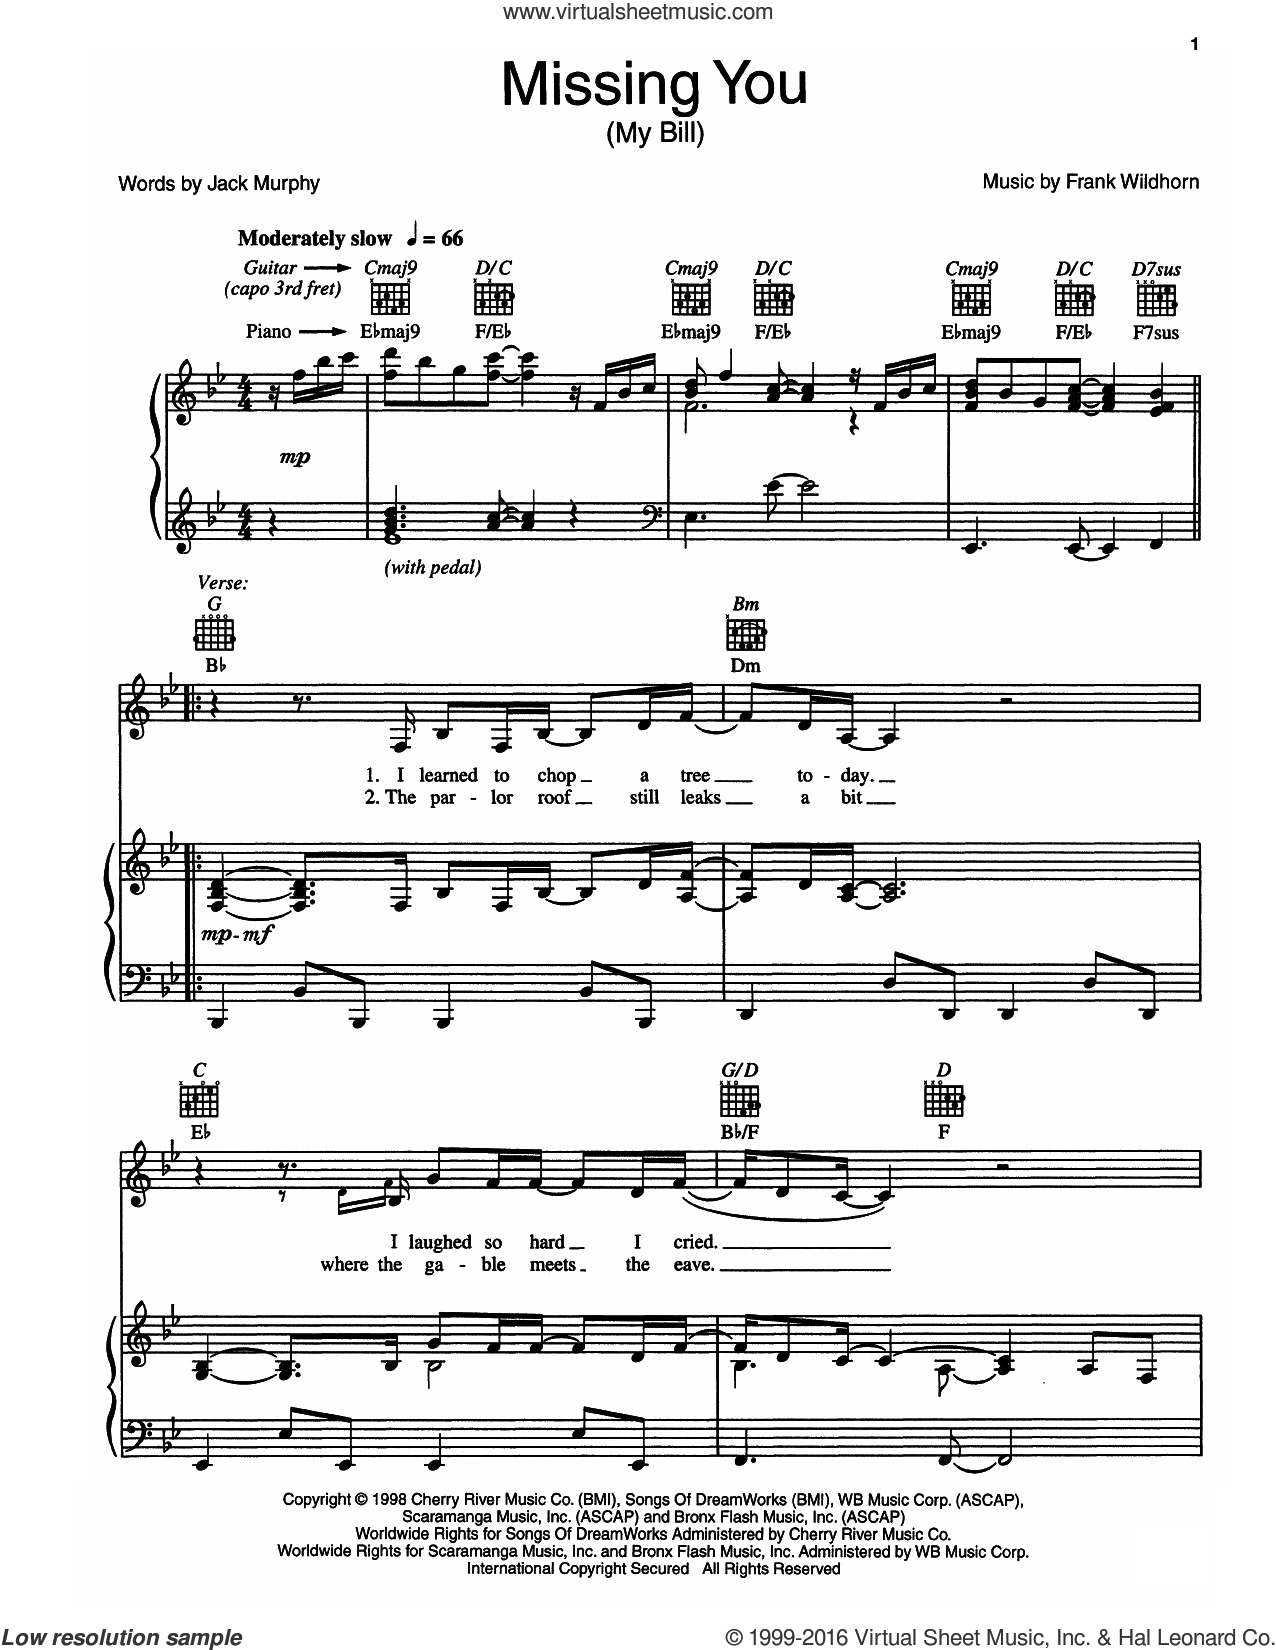 Missing You (My Bill) sheet music for voice, piano or guitar by Frank Wildhorn and Jack Murphy, intermediate voice, piano or guitar. Score Image Preview.